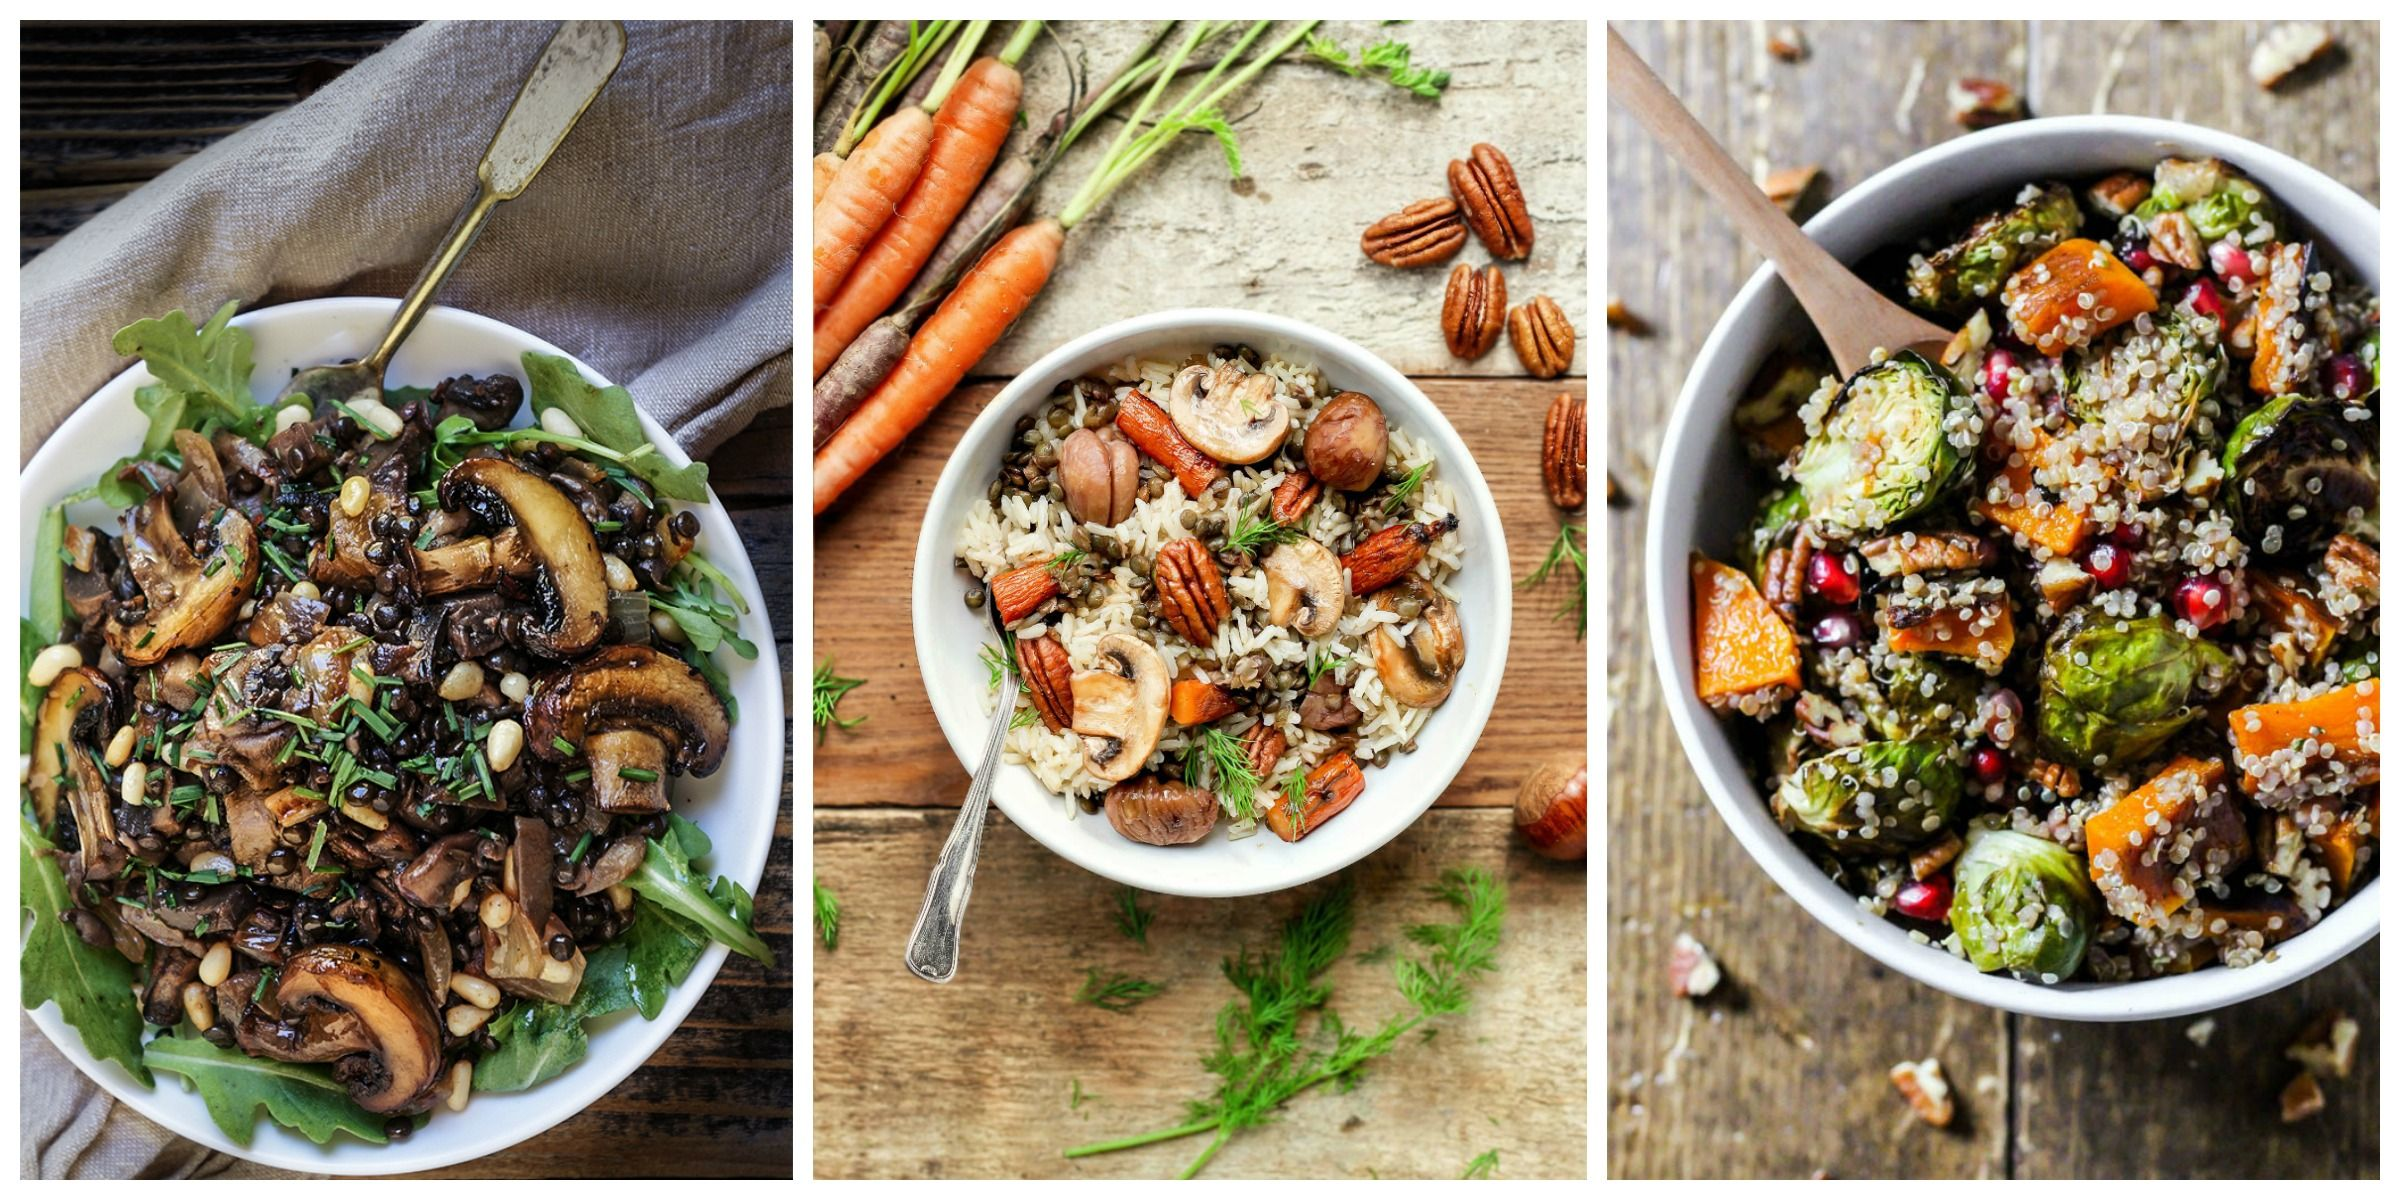 17 Colorful, Comforting Fall Salads to Make ThisSeason forecast